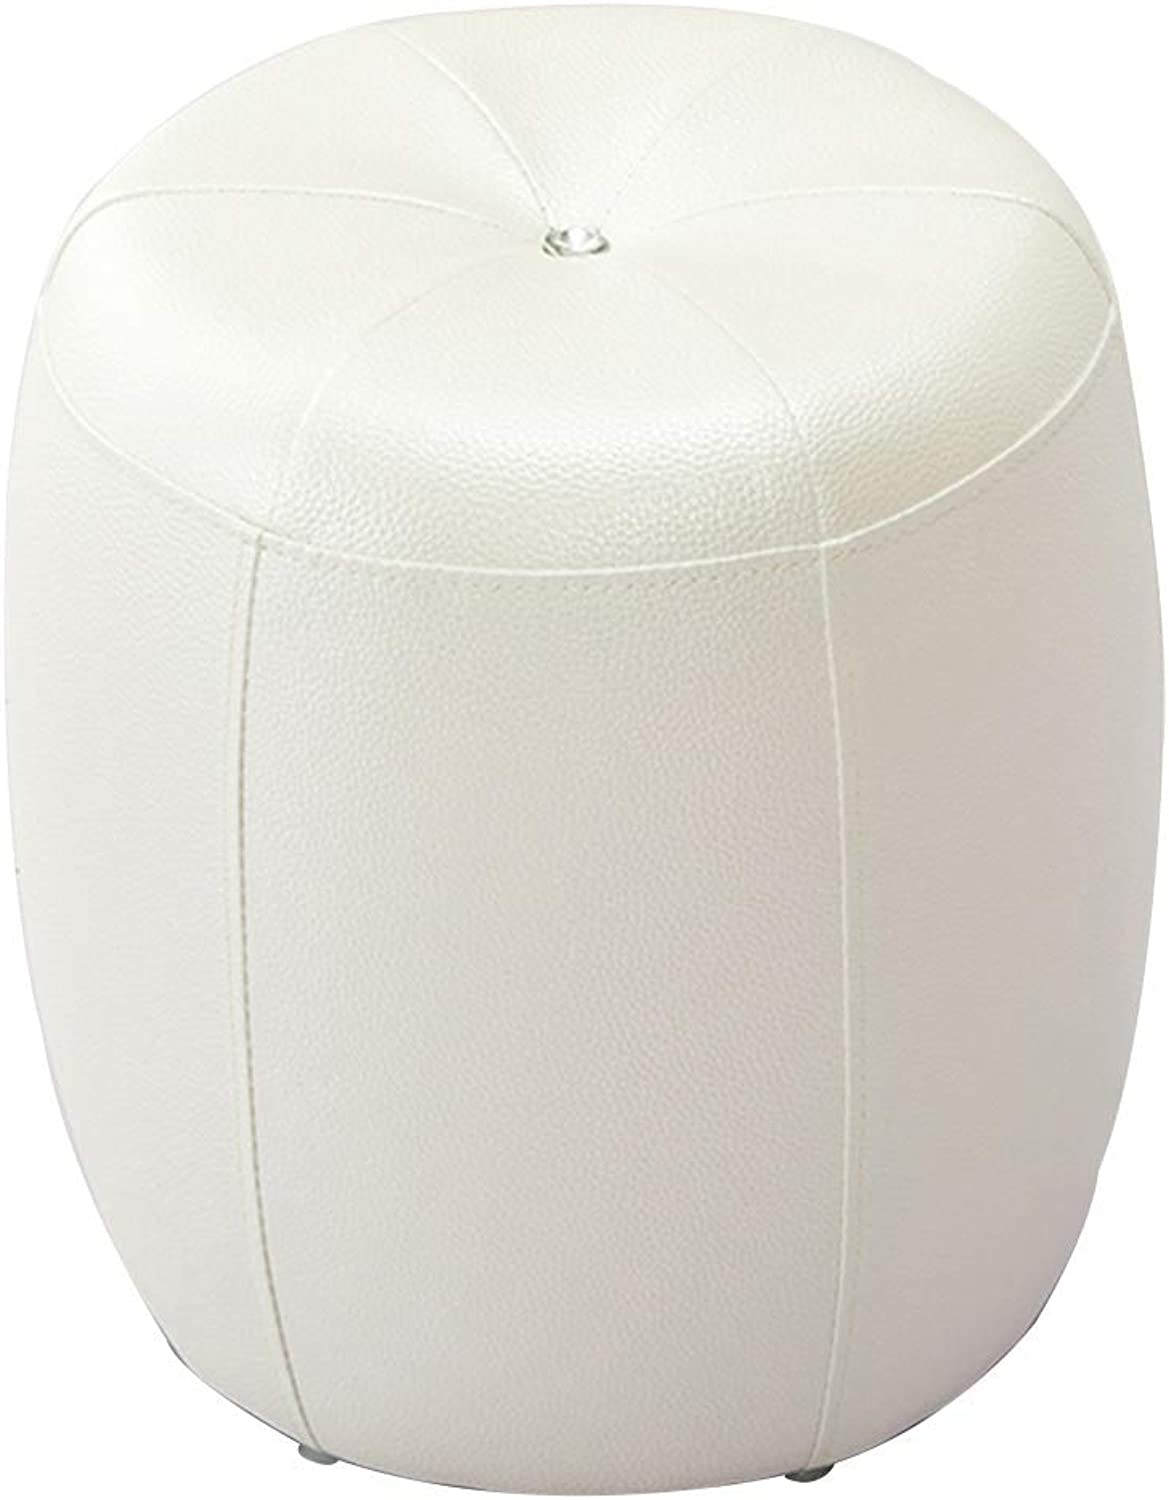 BYPING pouffes and Stool Upholstered footstools Solid Wood PU Wear Resistant Cotton pad Bedroom Change shoes, 4 colors (color   White, Size   35X35X40CM)